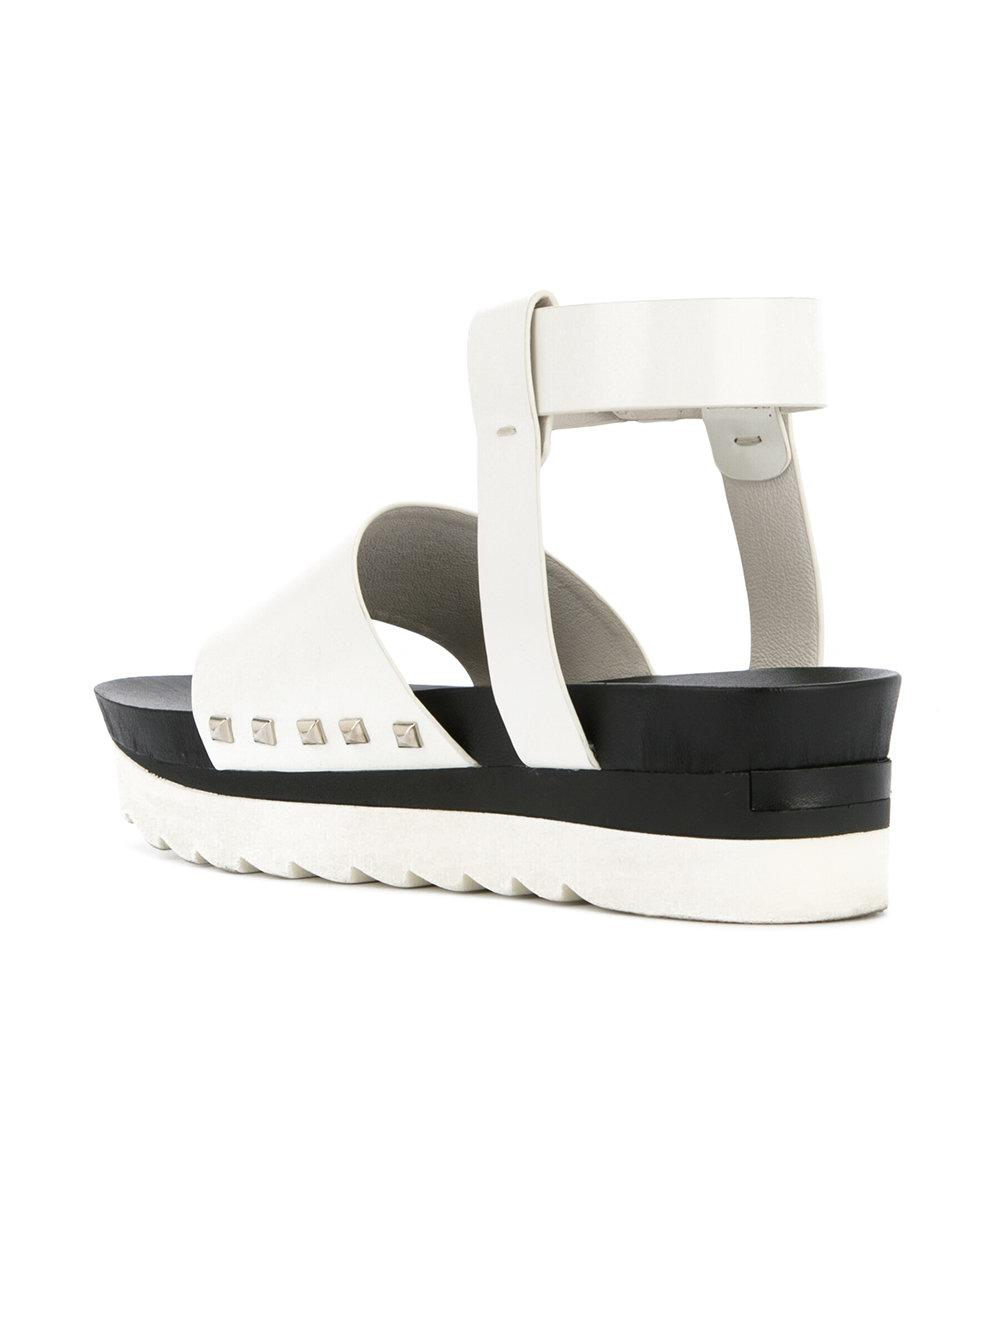 Manning Cartell Social platforms sandals lowest price sale online free shipping fast delivery many kinds of cheap online discount big sale wide range of cheap price MO4OQjE9